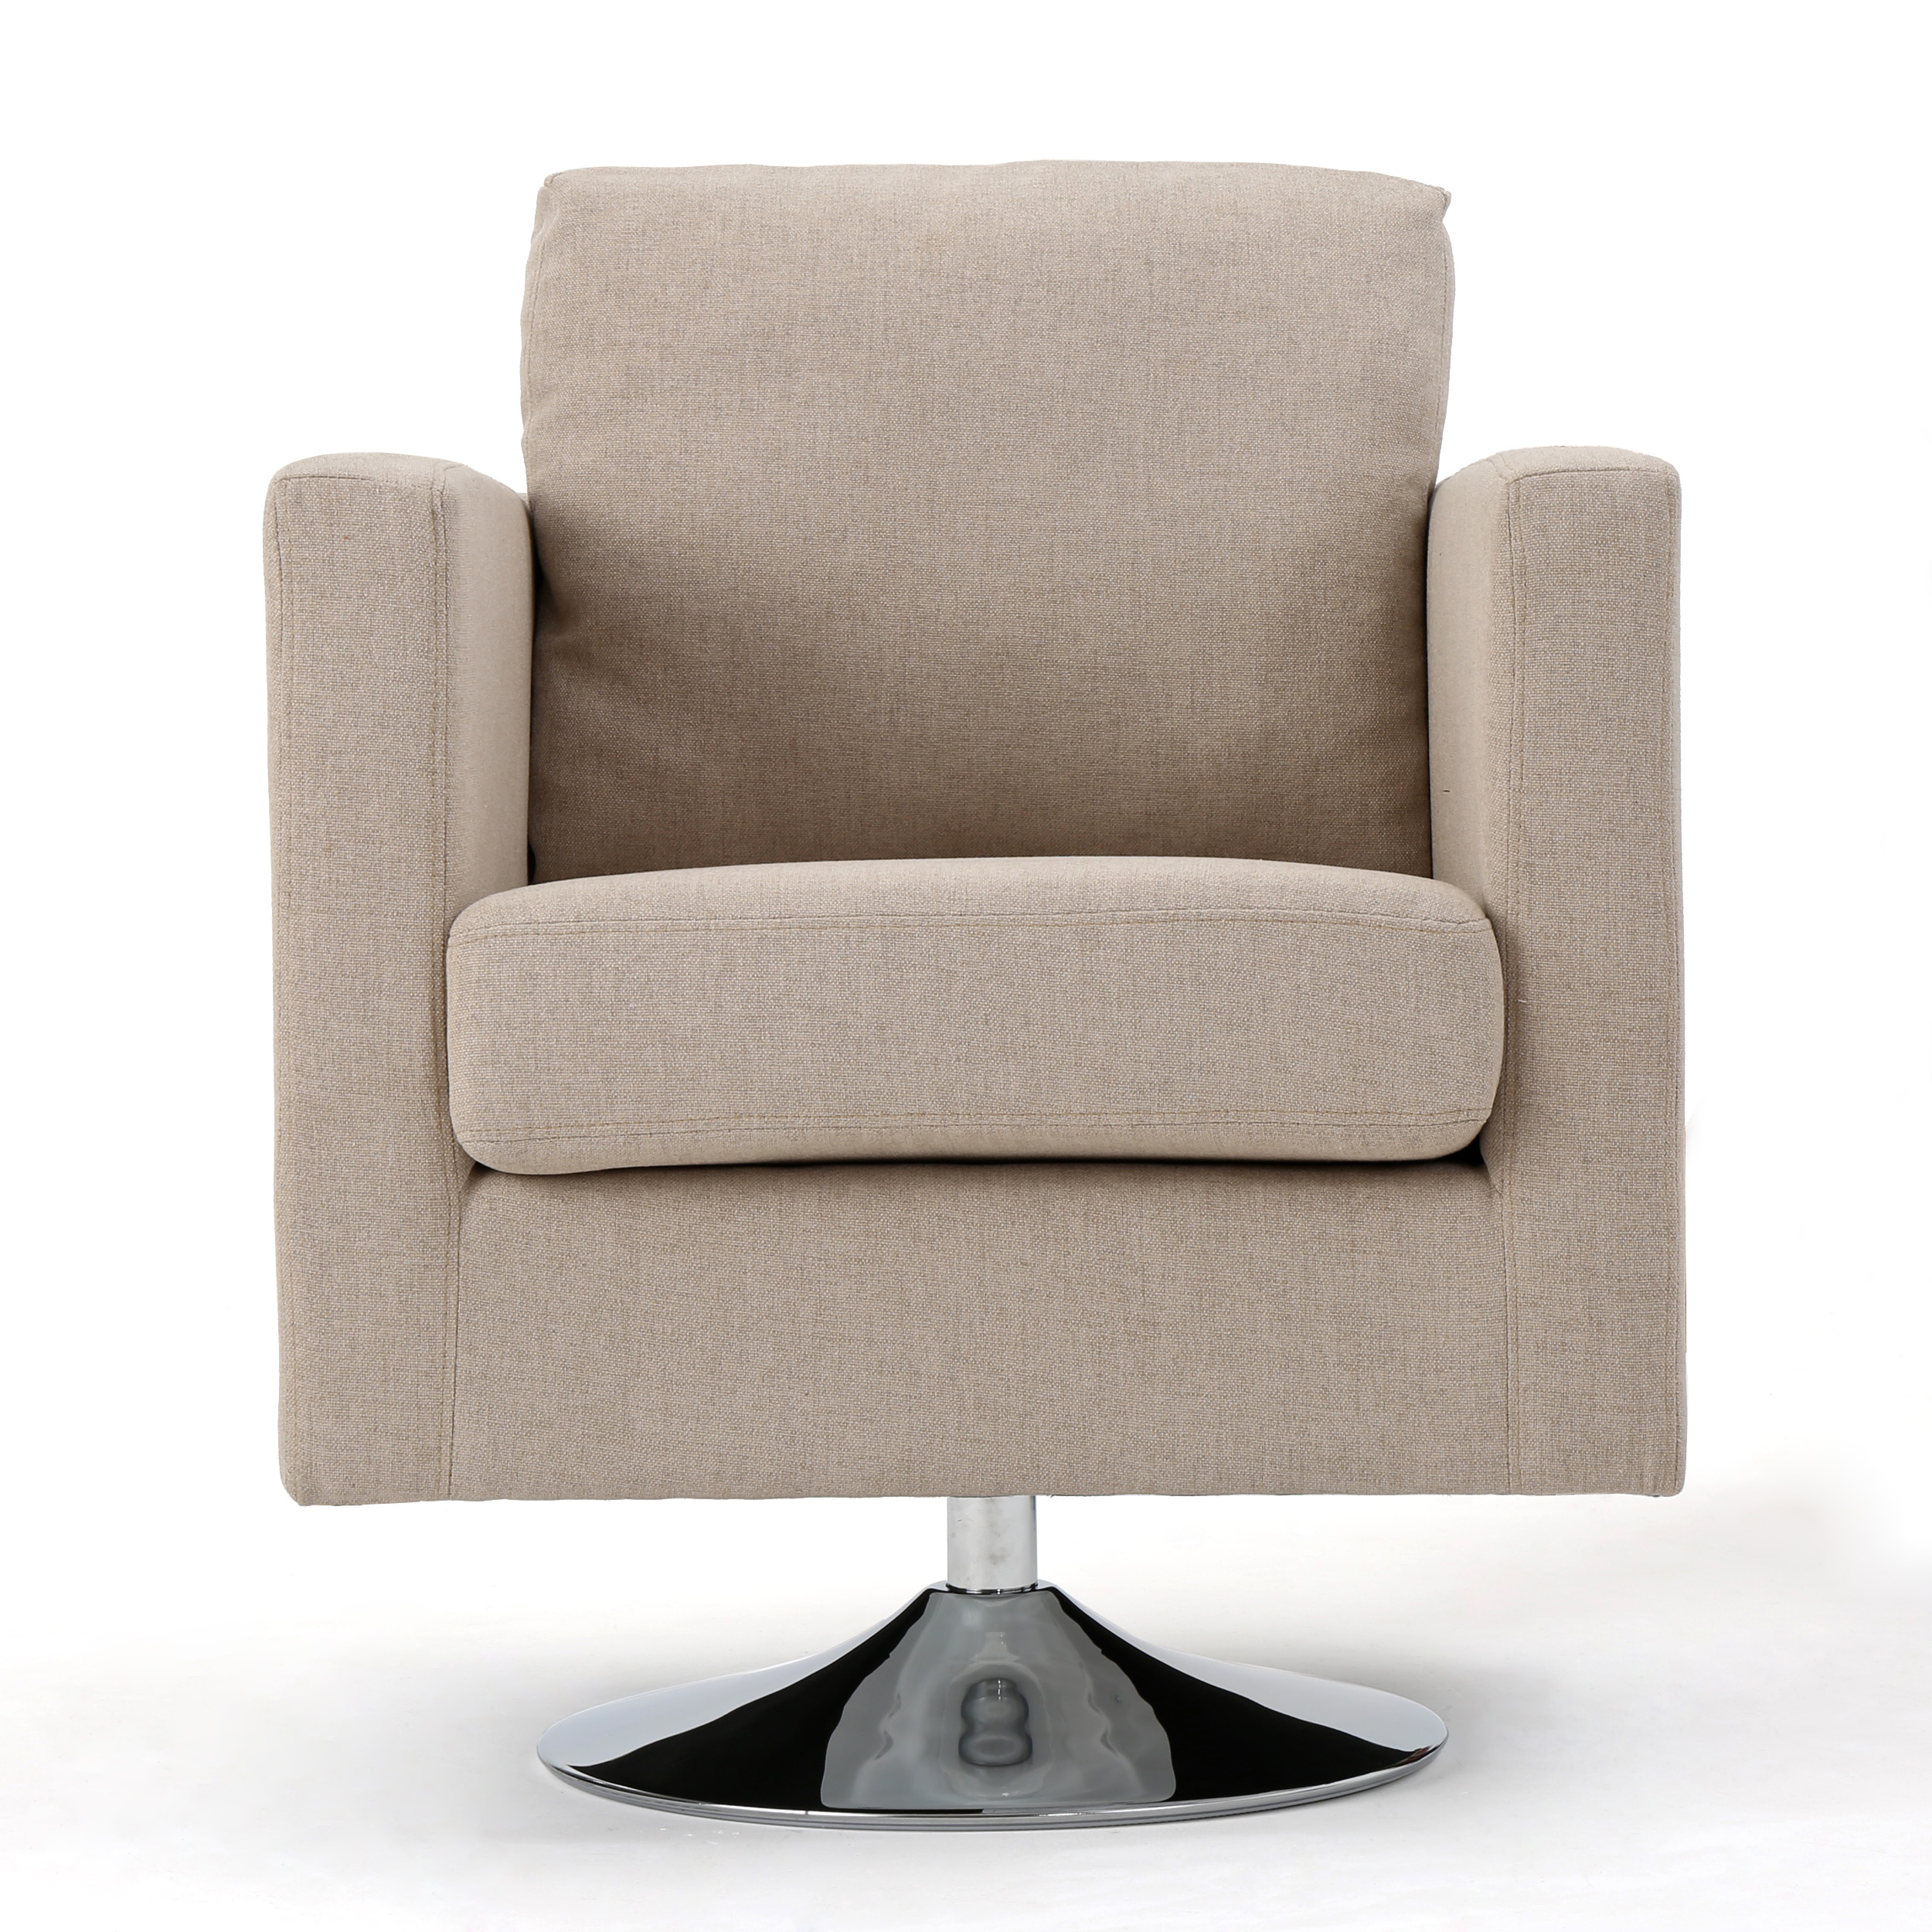 Hahn Modern Fabric Swivel Armchair, Cream